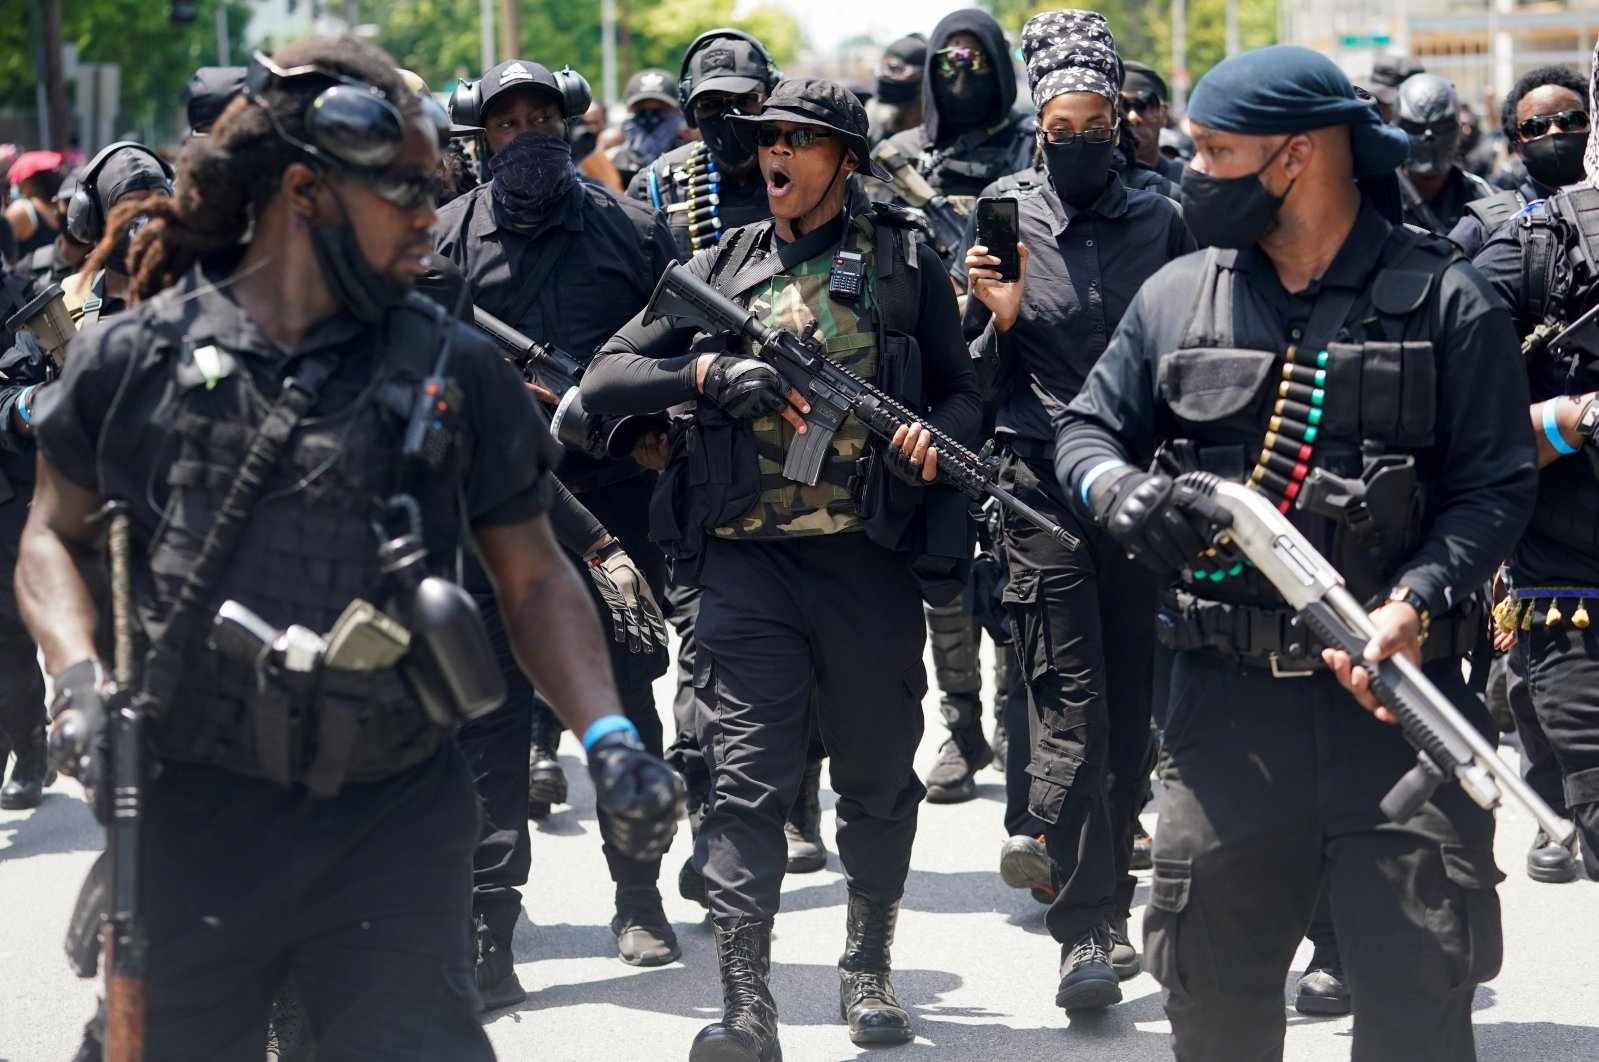 Grand Master Jay, center, leader of an all-black militia group called NFAC, leads his followers on a march during an armed rally in Louisville, Kentucky, U.S. July 25, 2020. (Reuters Photo)